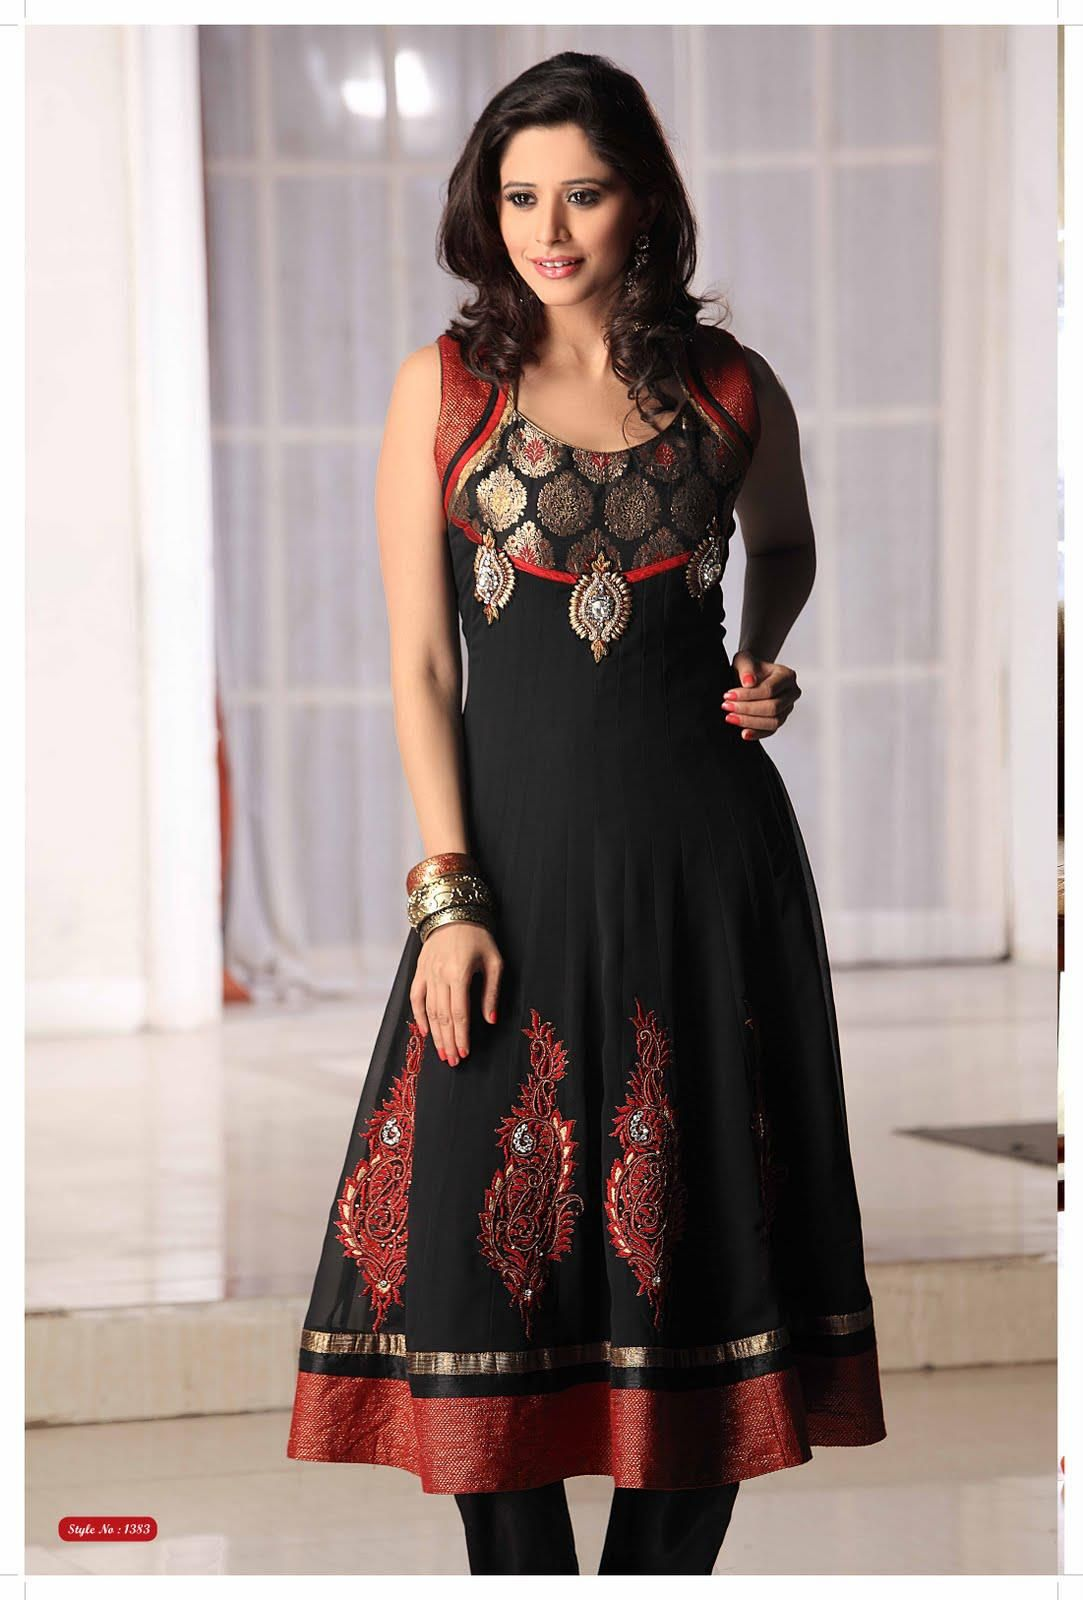 c3ed16f776 Salwar Kameez is basically an Indian ethnic wear. The dress is mainly meant  for the women to wear. The existence of the Salwar Kameez can be traced  back ...